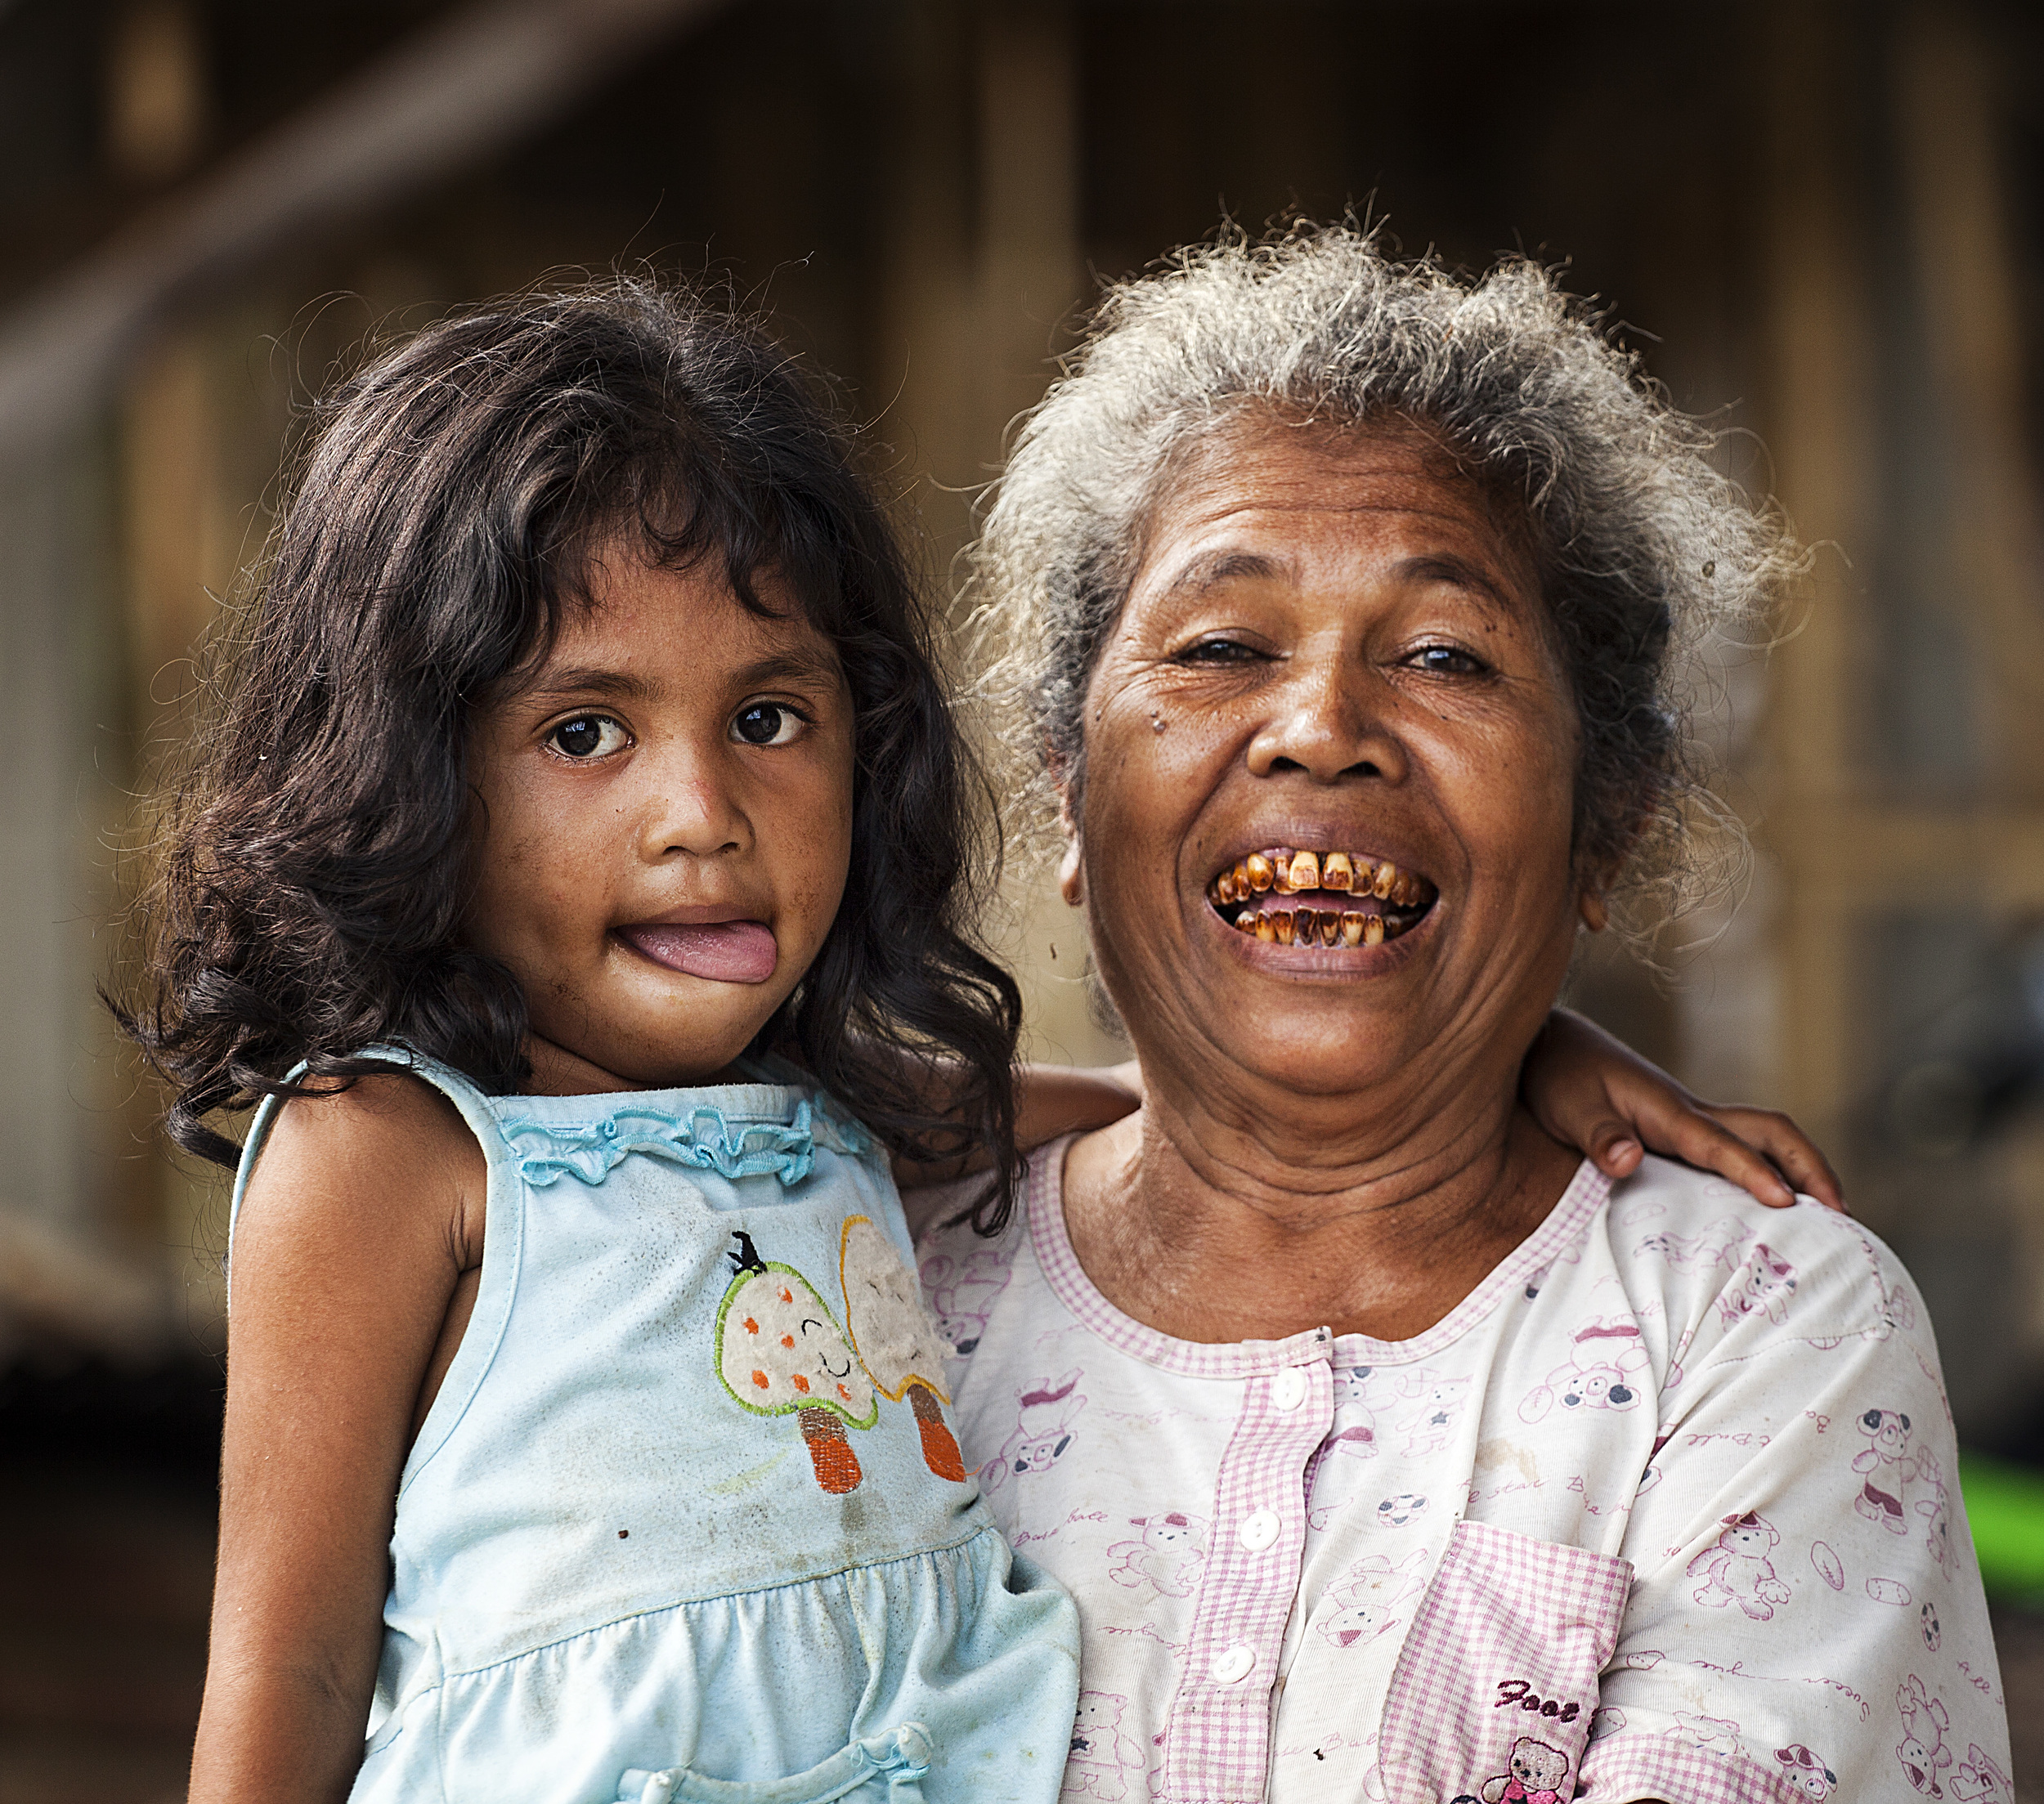 This is what happens to your teeth from a lifetime of betel nut chewing